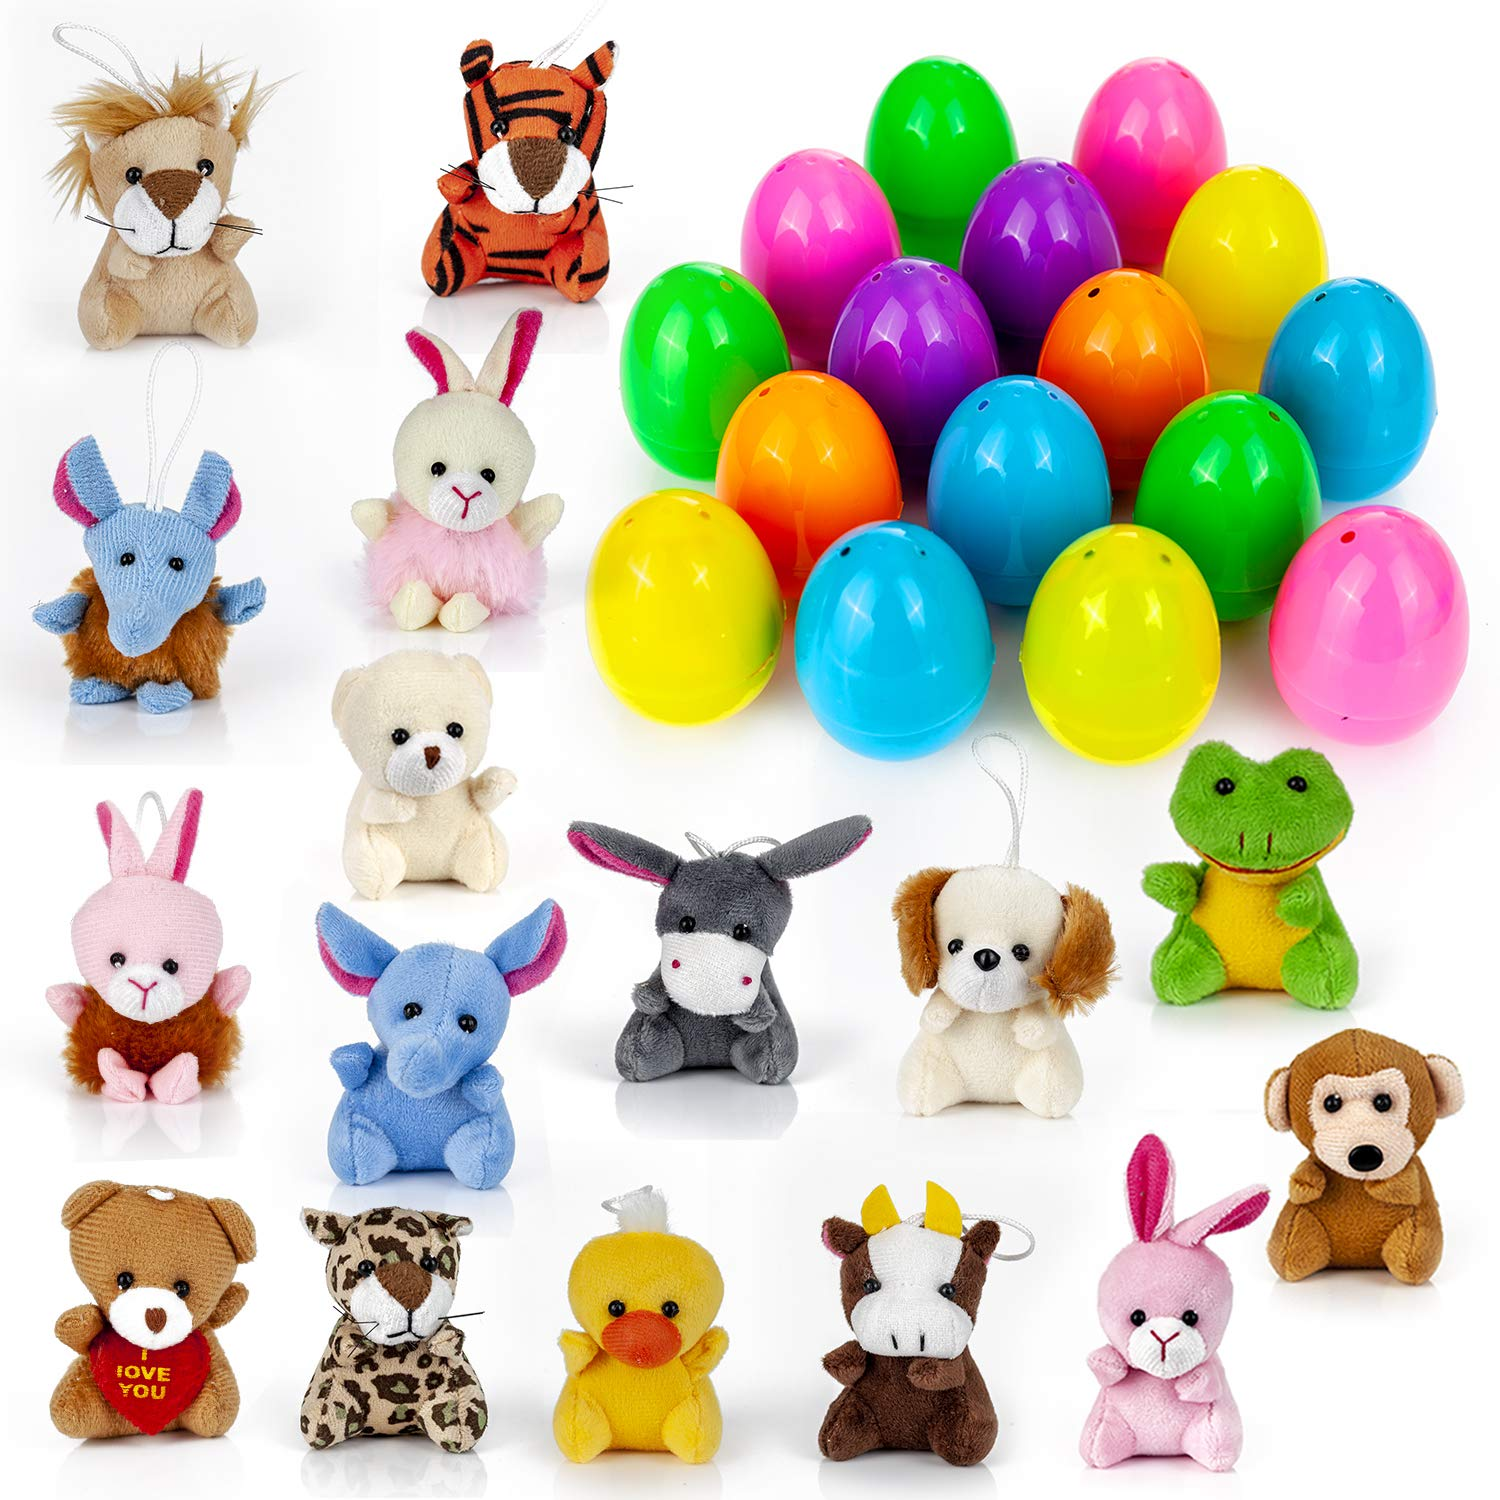 YIHONG 16 Toys Filled Surprise Easter Eggs, 3 Inch Colorful Prefilled Plastic Easter Eggs with 16 Pcs Mini Animal Plush for Kids Easter Hunt, Basket Stuffers Fillers and Party Favor